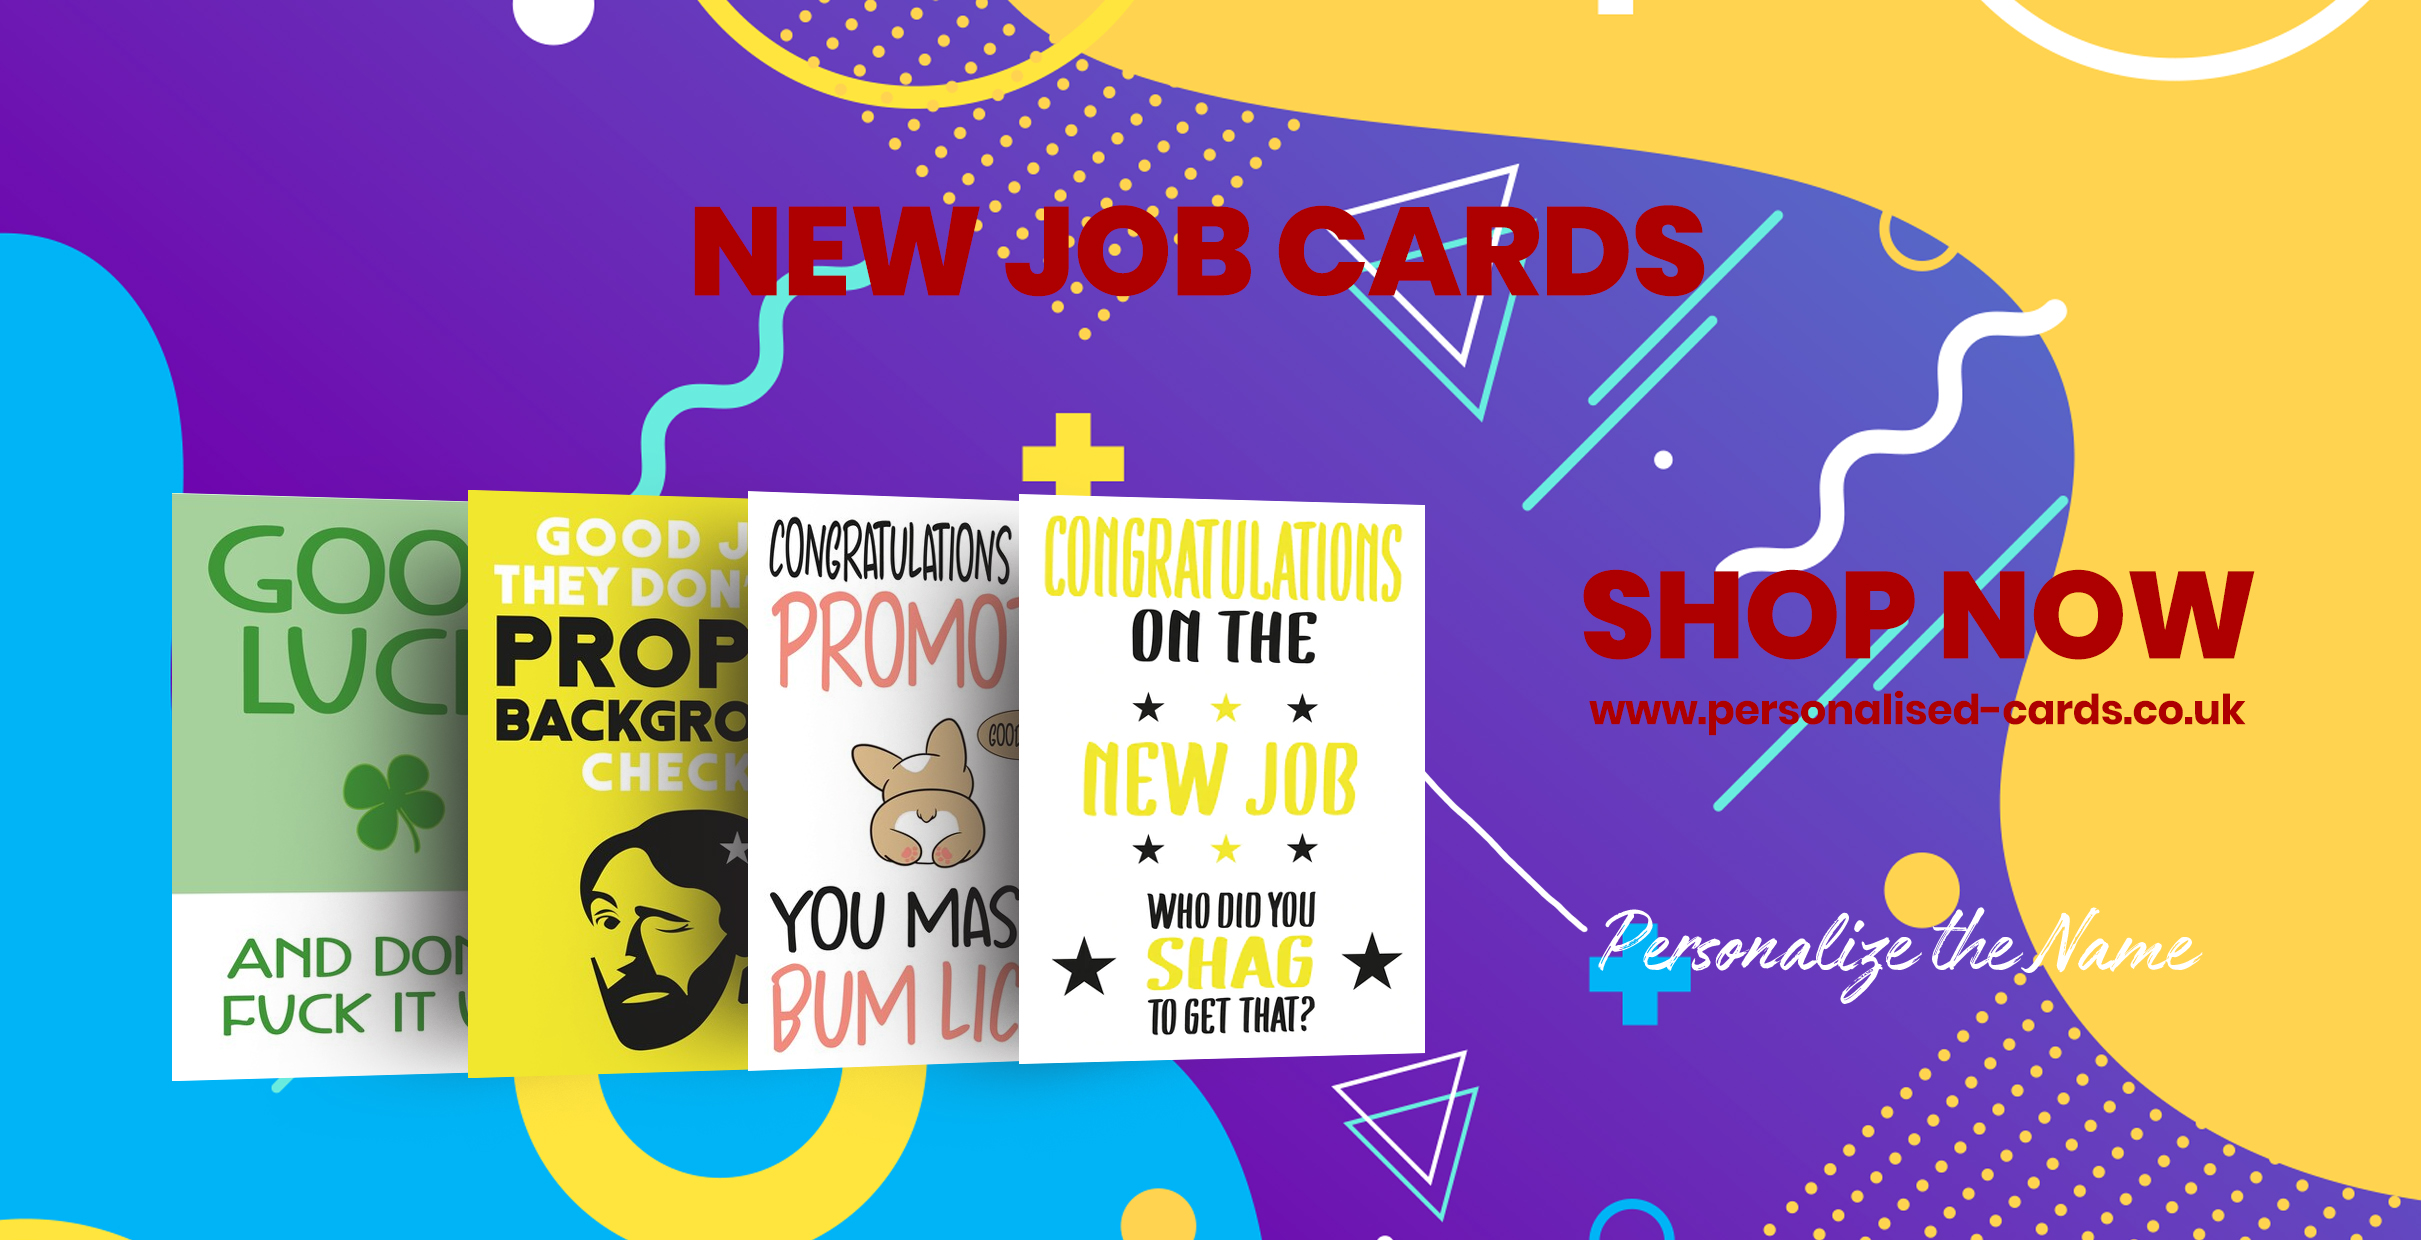 new-job-cards.jpg